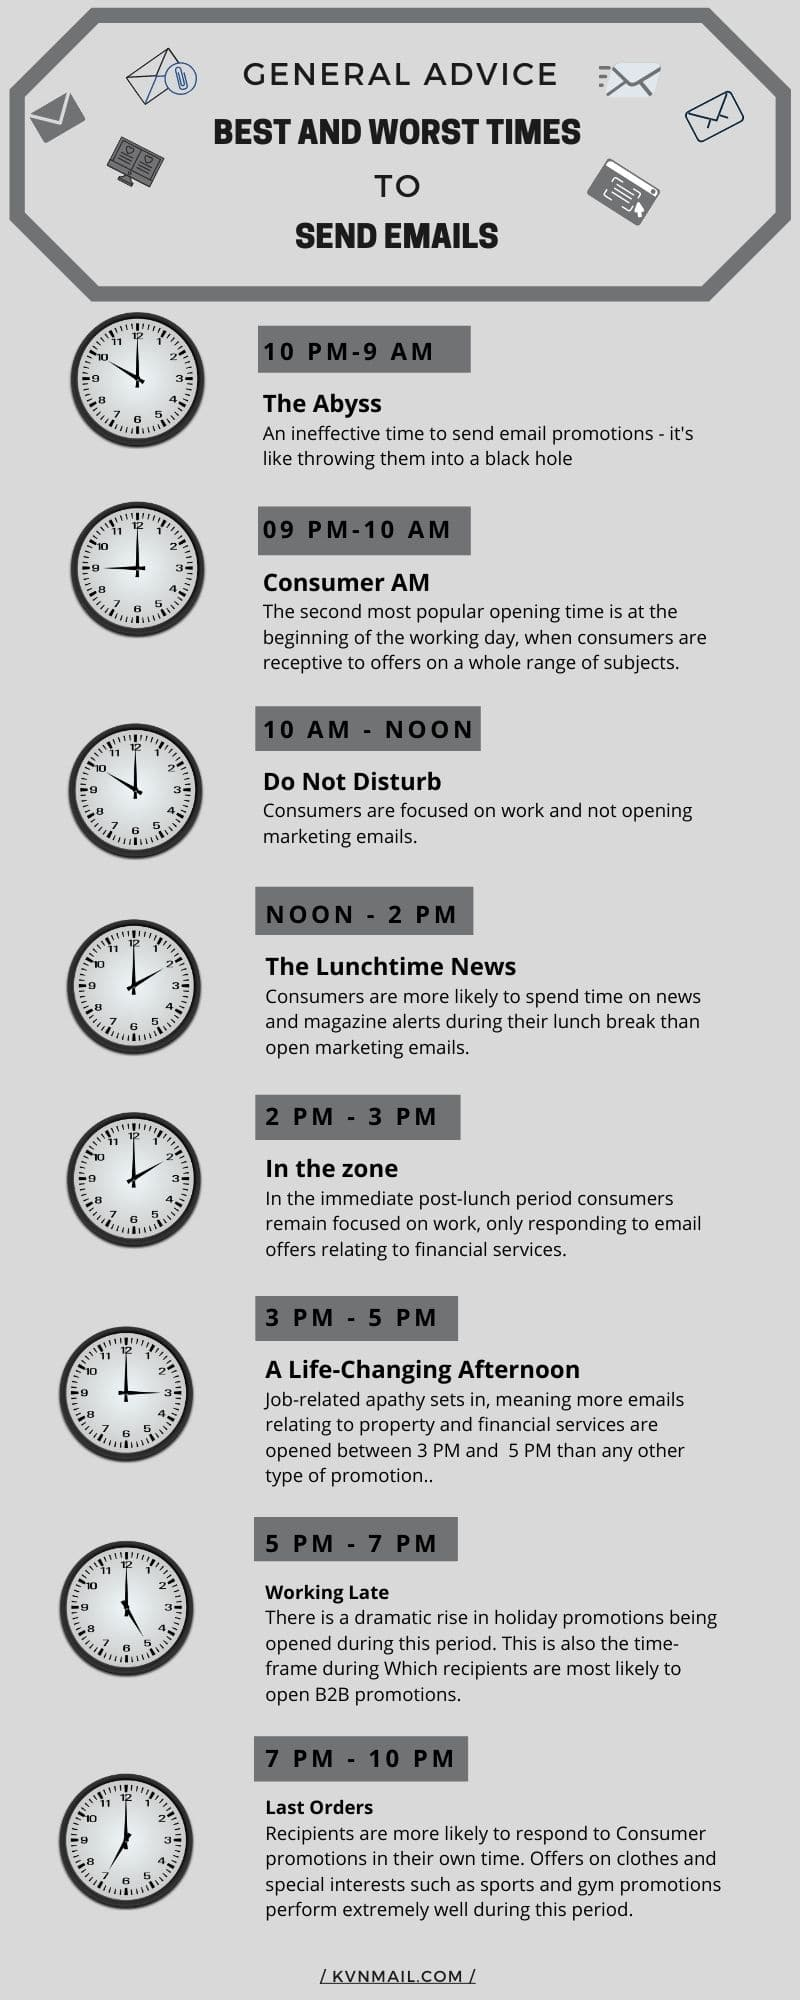 General Advice for Best and Worst Times to Send Emails